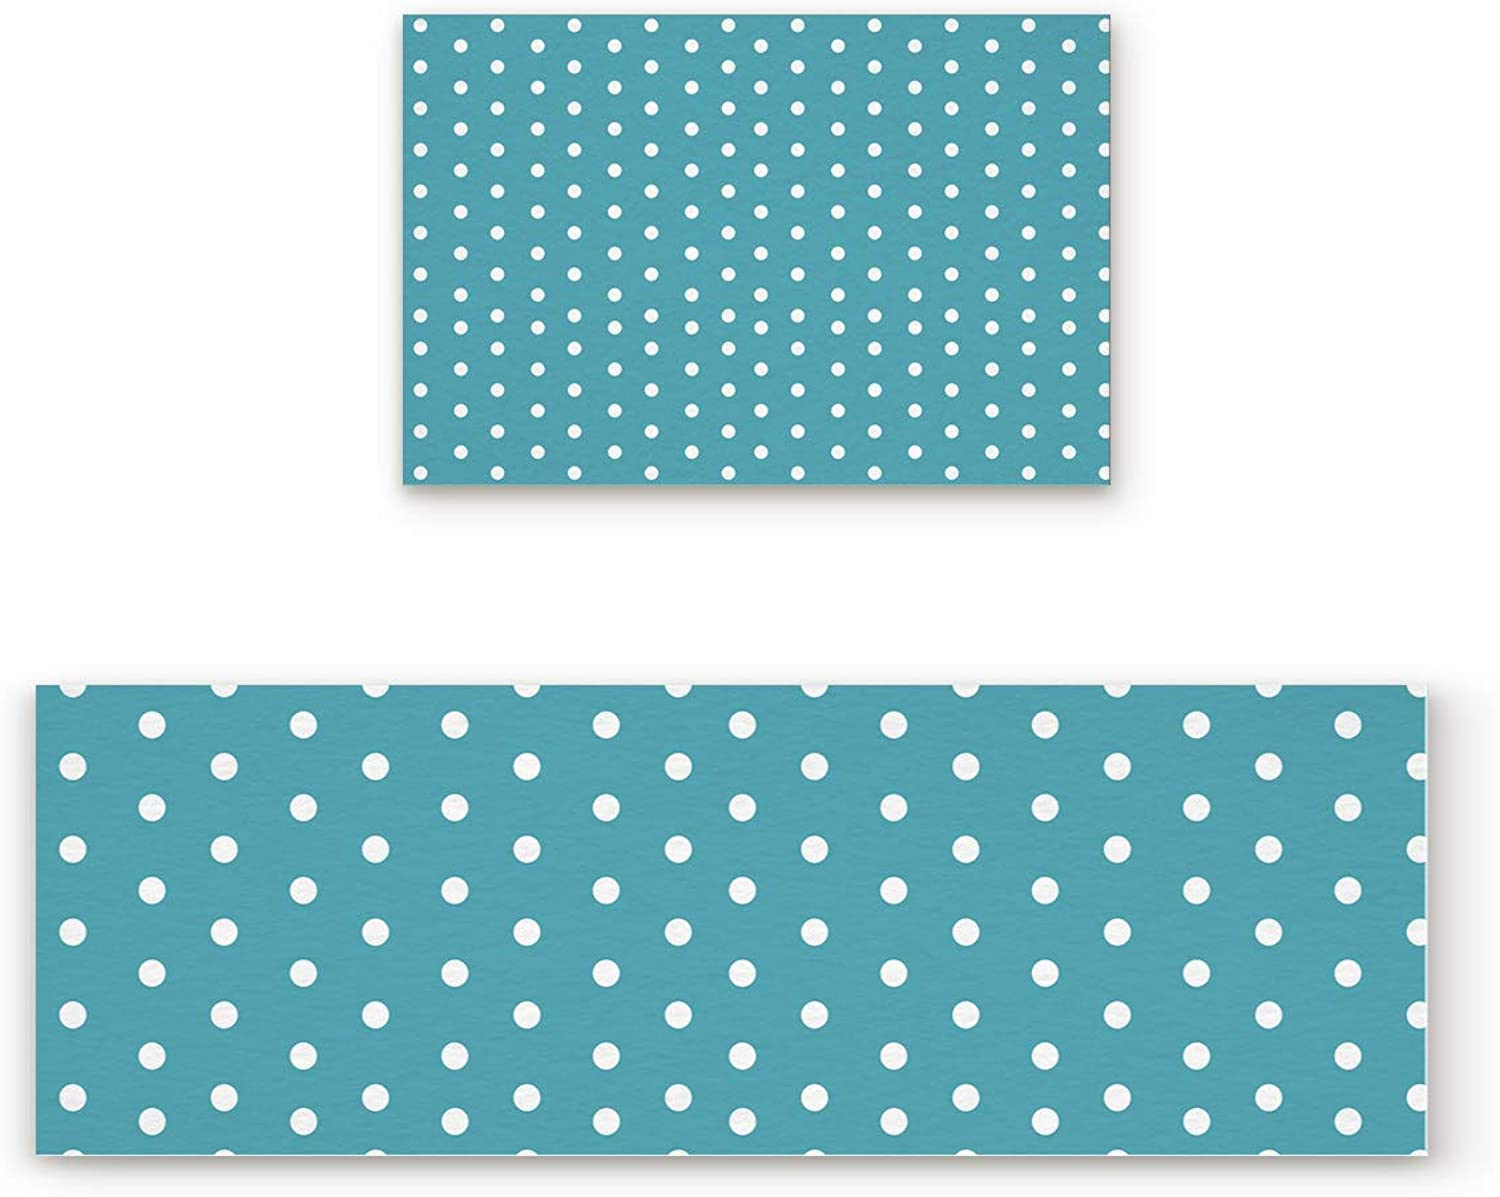 Aomike 2 Piece Non-Slip Kitchen Mat Rubber Backing Doormat Teal and White Dots Runner Rug Set, Hallway Living Room Balcony Bathroom Carpet Sets (19.7  x 31.5 +19.7  x 63 )